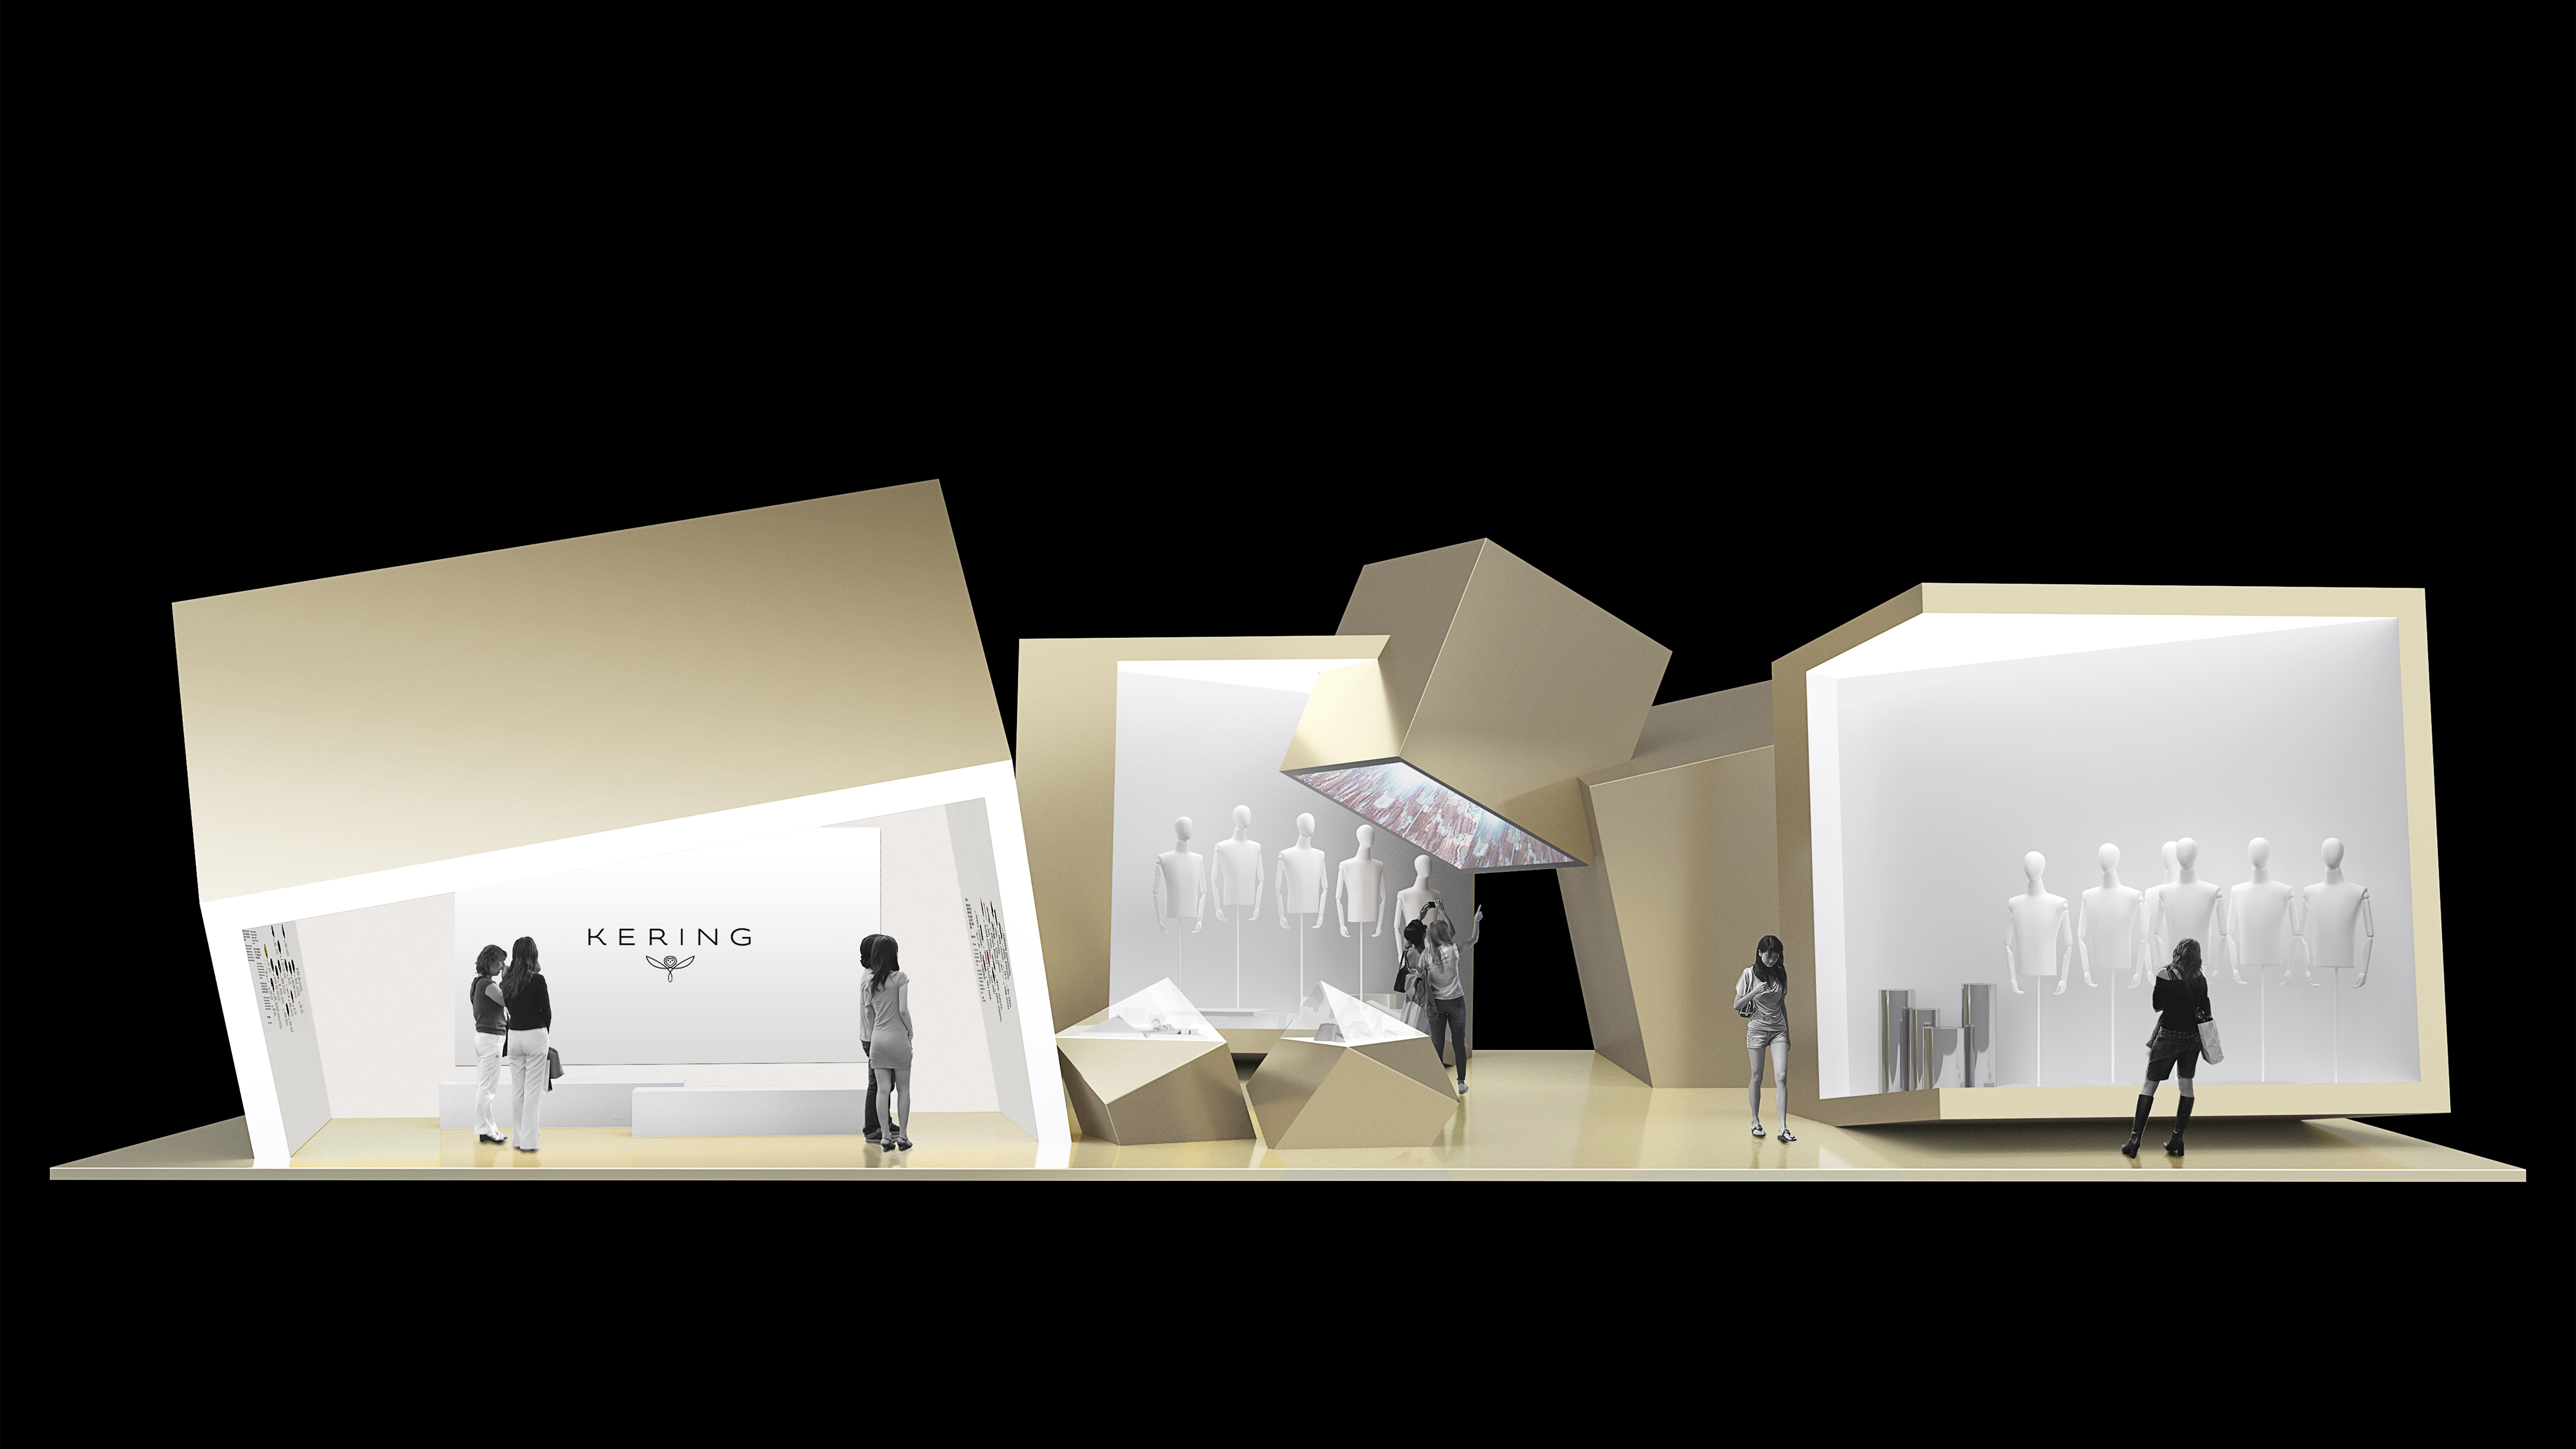 Kering Pavilion at the second edition of China International Import Expo in Shanghai